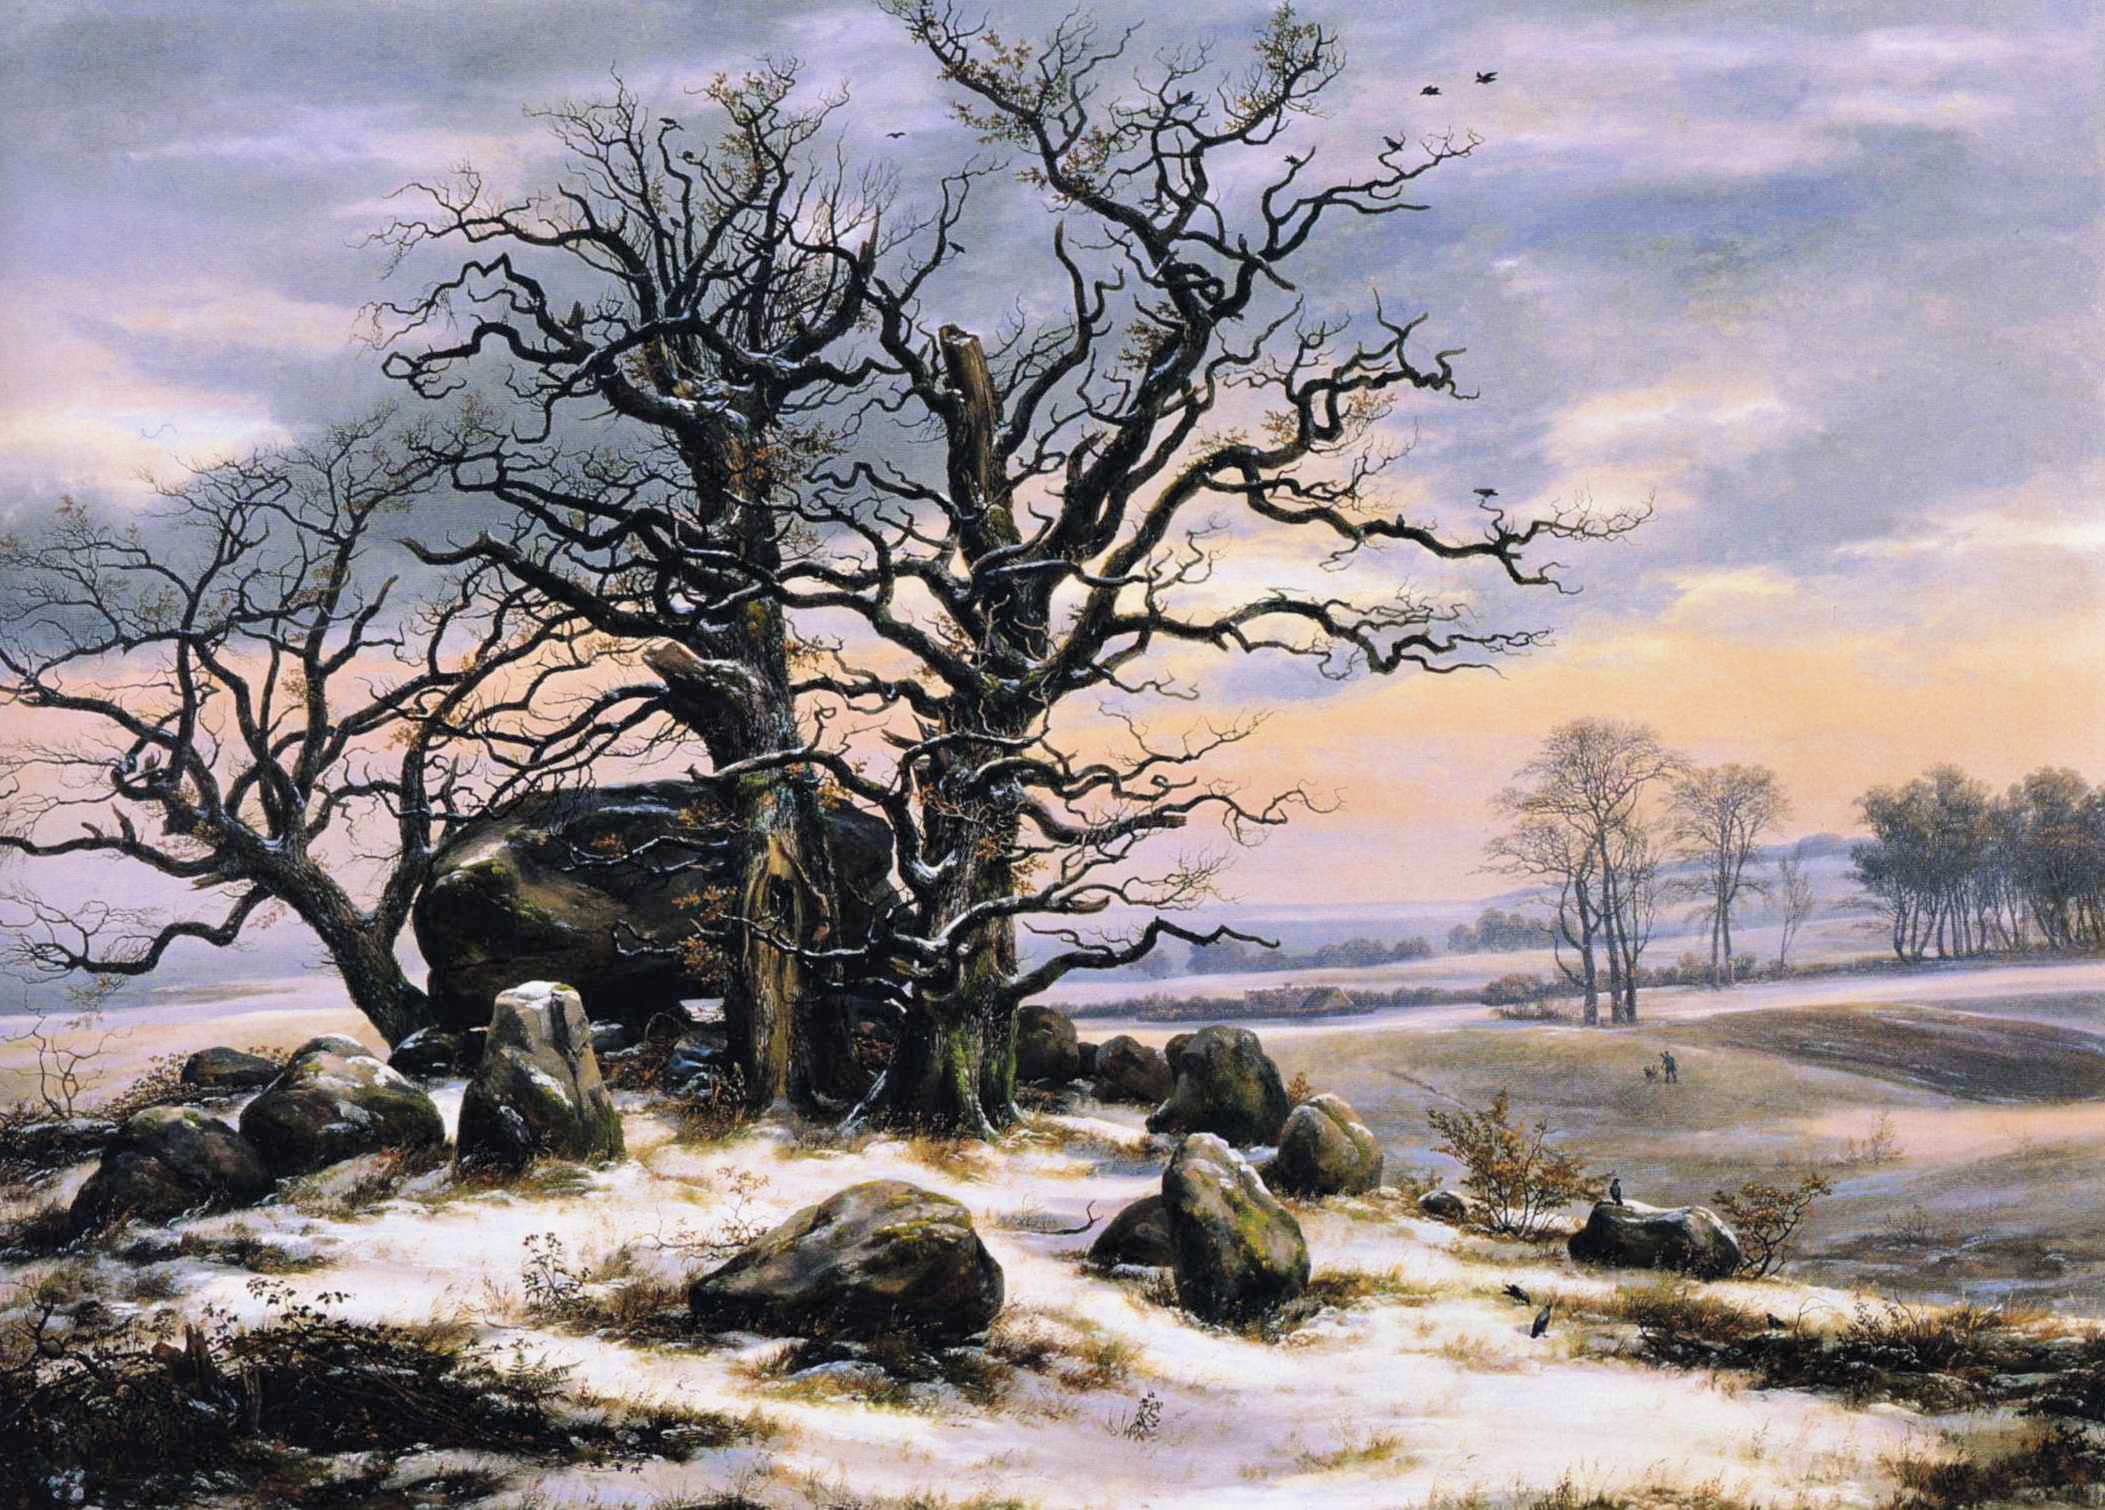 Johan_Christian_Dahl_-_Megalith_Grave_in_Winter